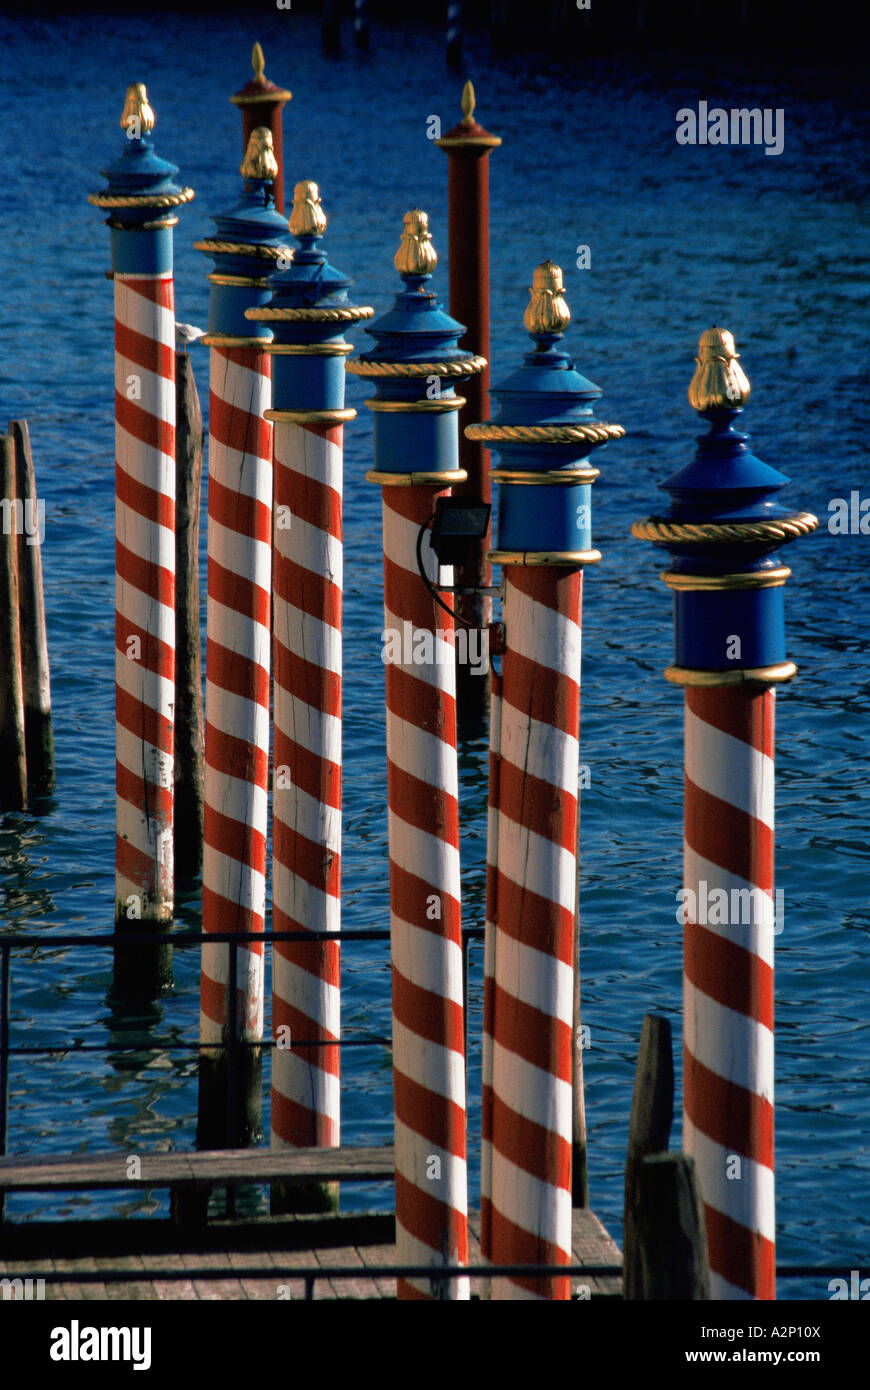 Wooden posts - Stock Image